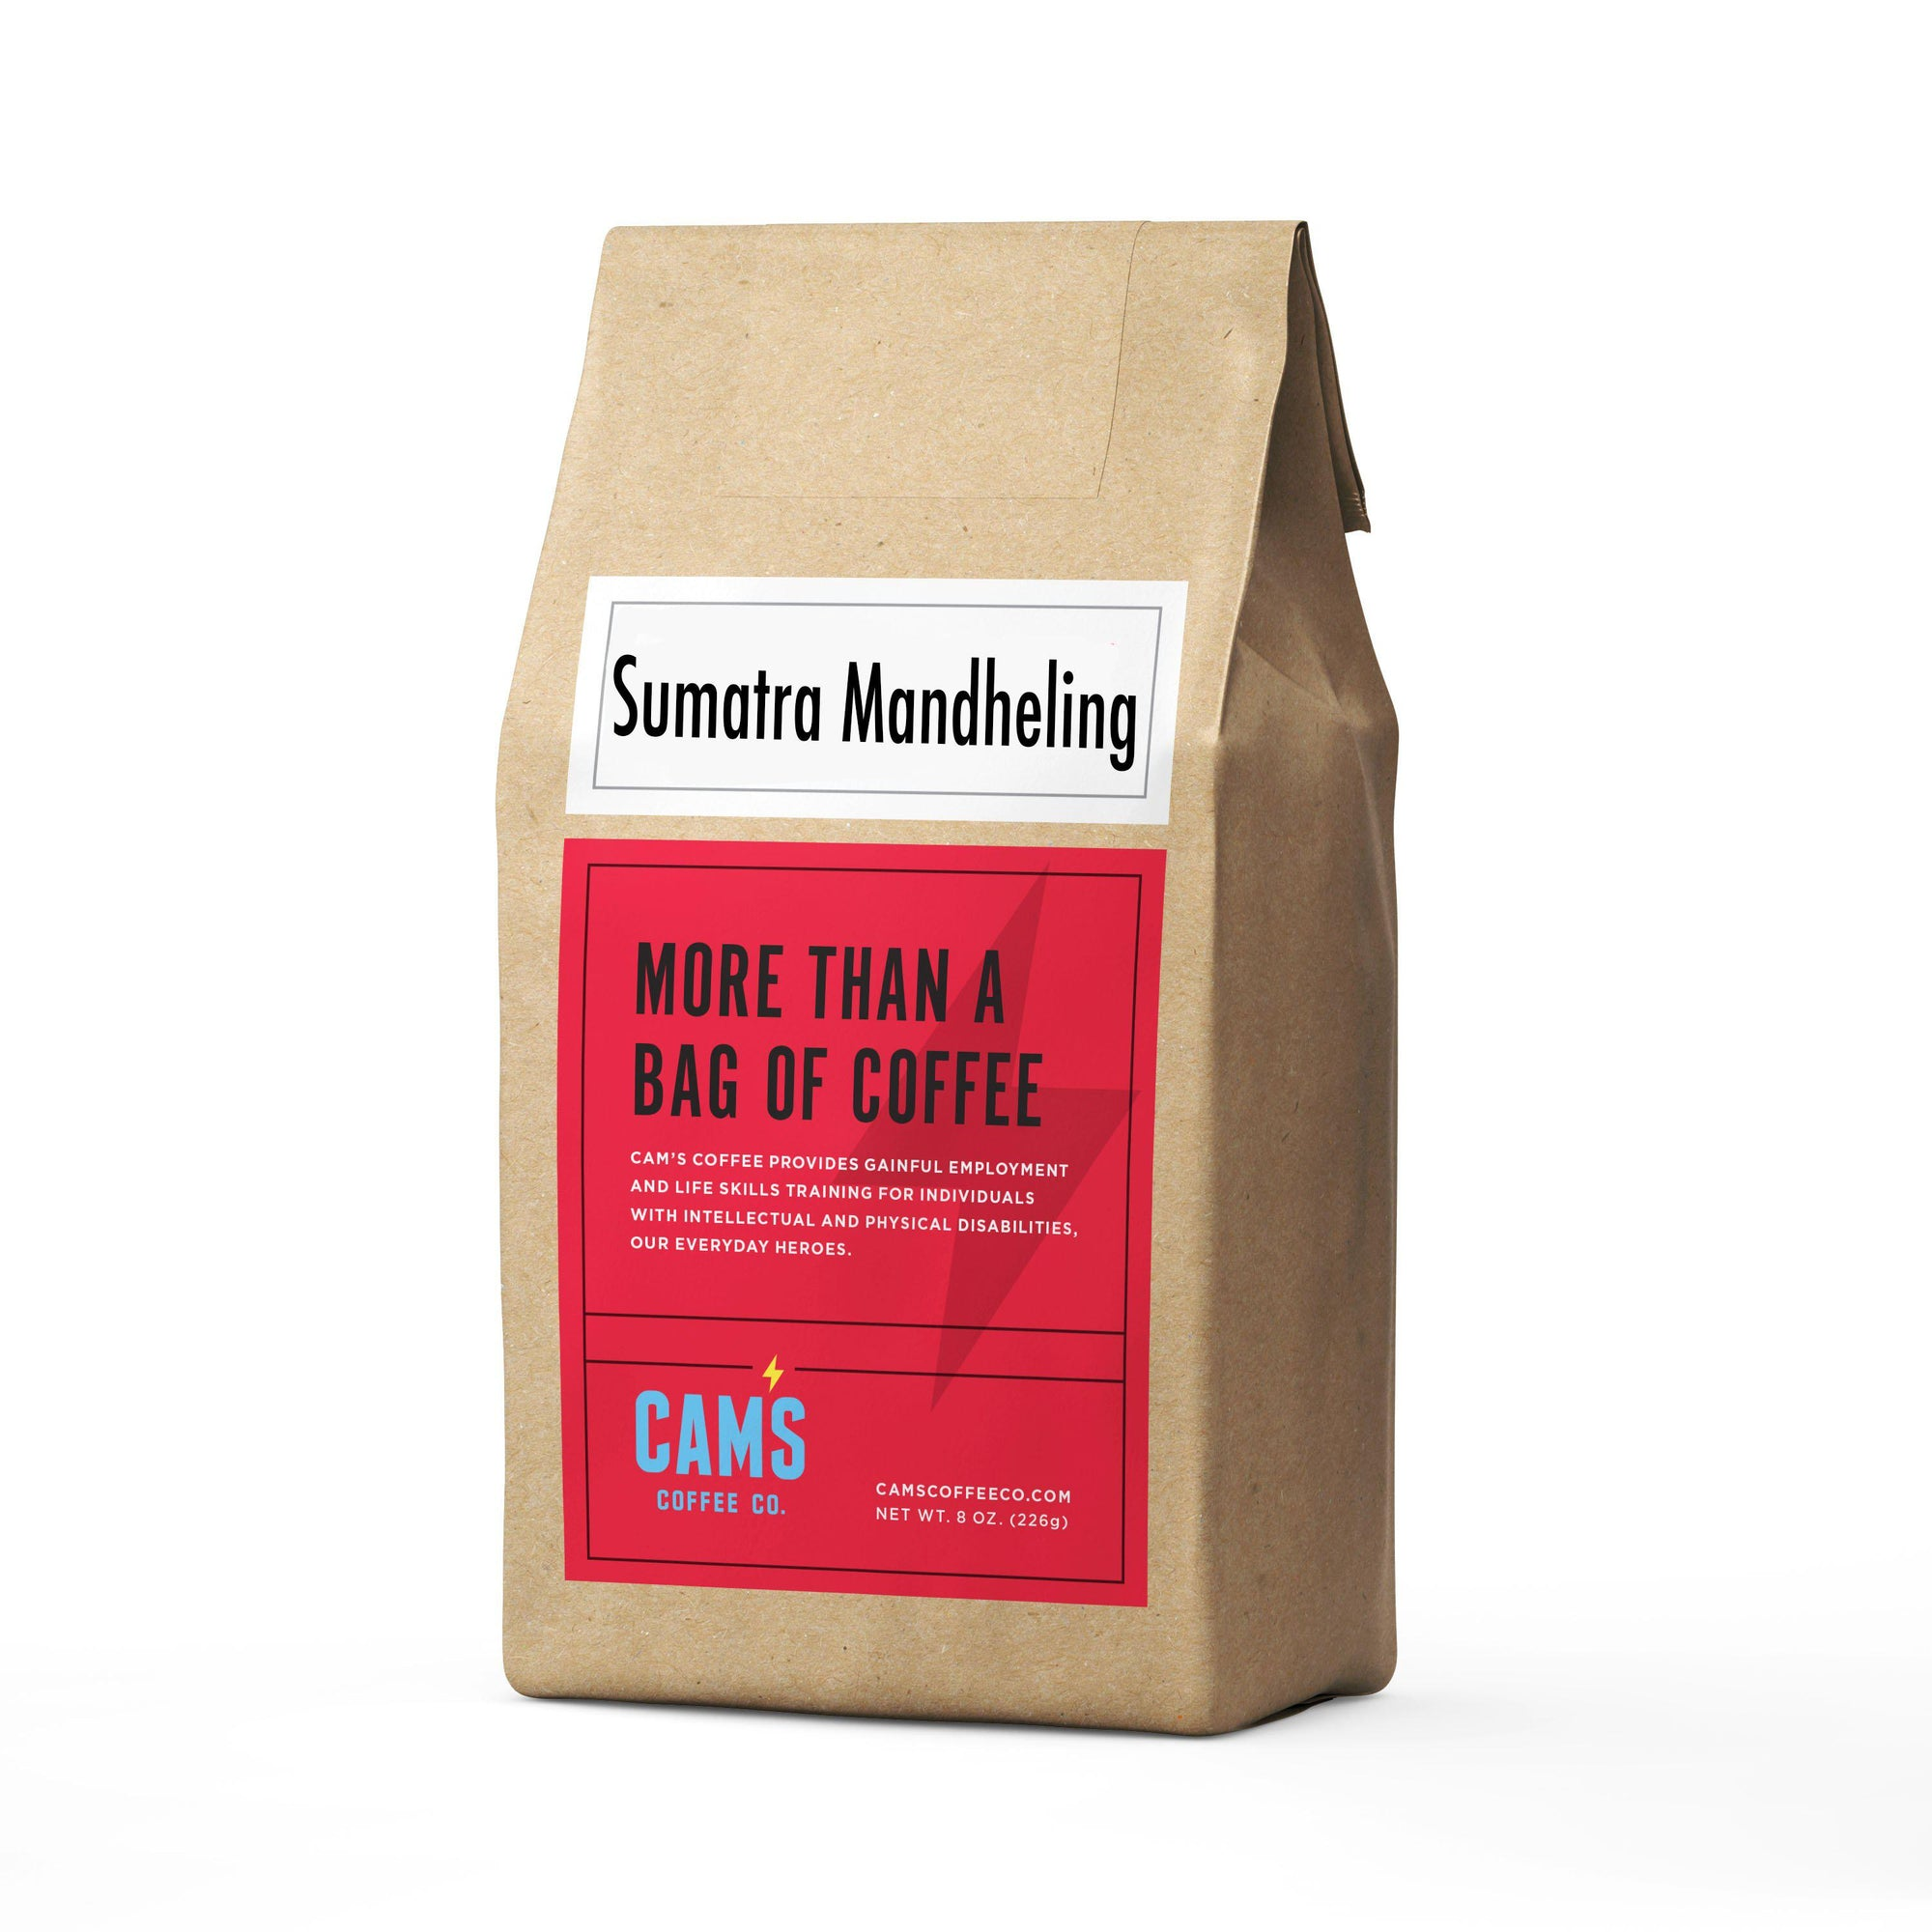 Sumatra Mandheling-coffee-Cam's Coffee Creations-whole bean-Cam's Coffee Co.